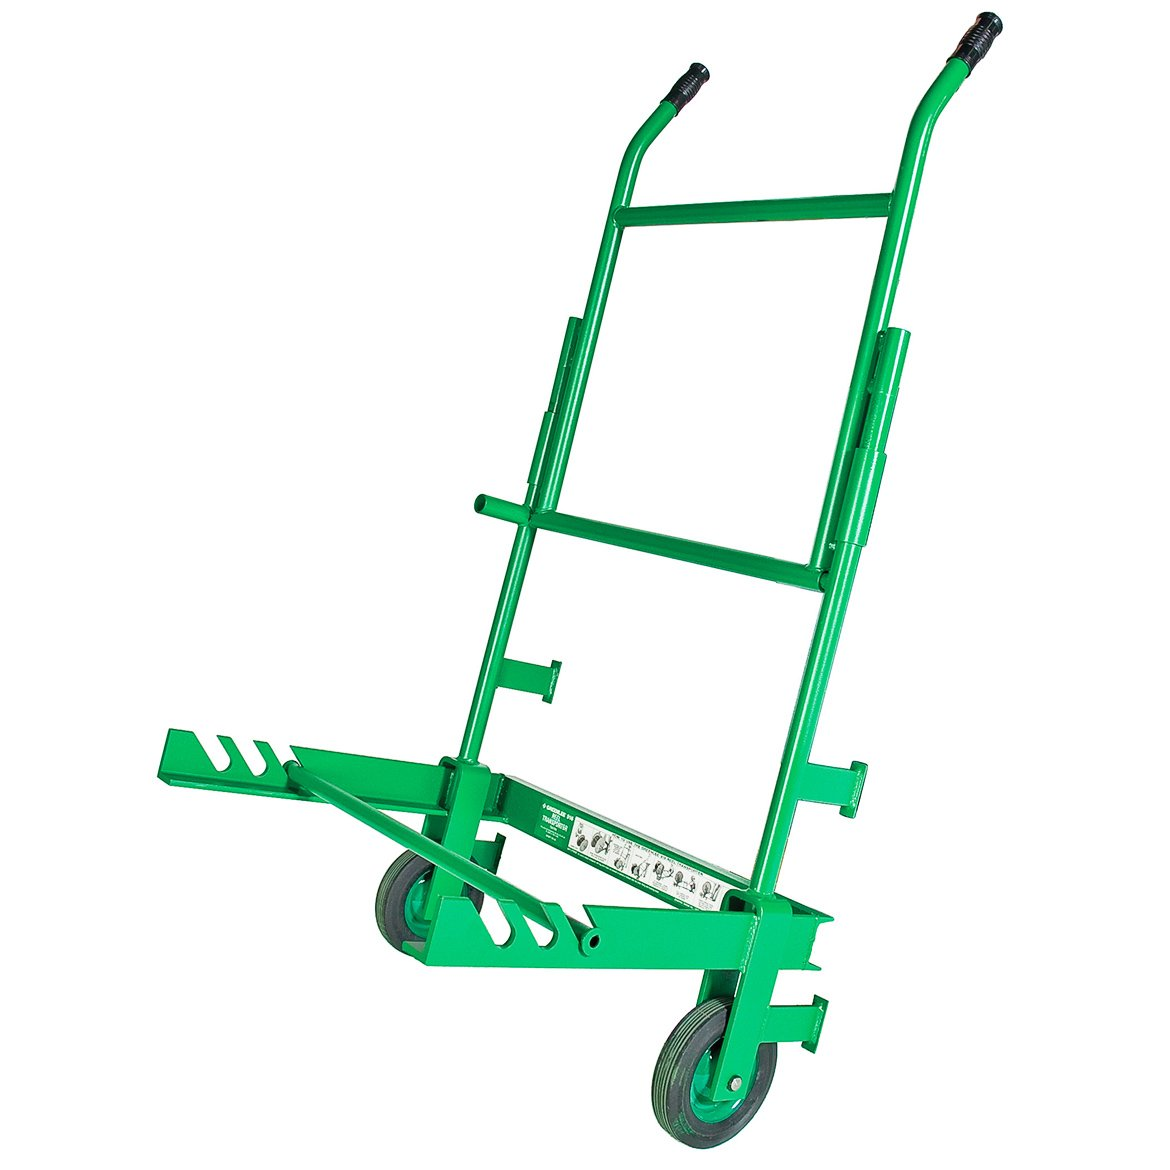 Greenlee 911 Large Capacity Wire Cart - Wire Strippers - Amazon.com